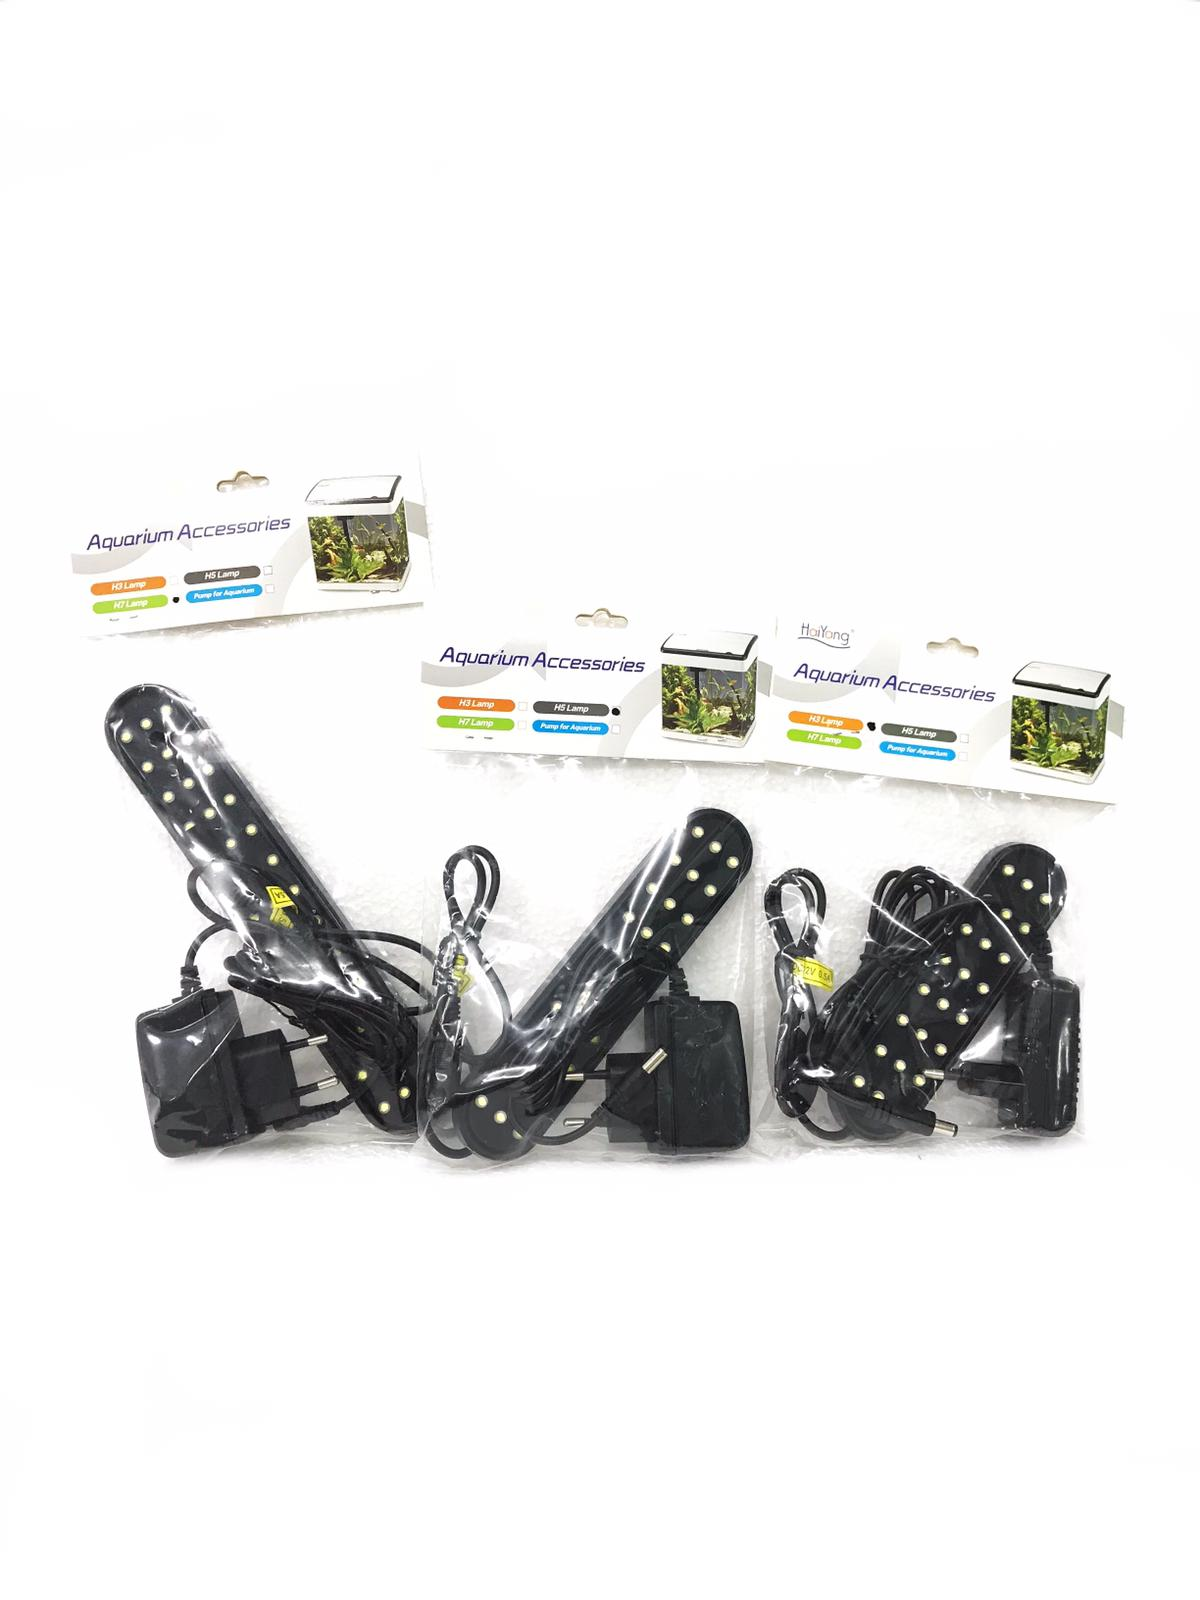 CL Aquacurv Light set + Ballast